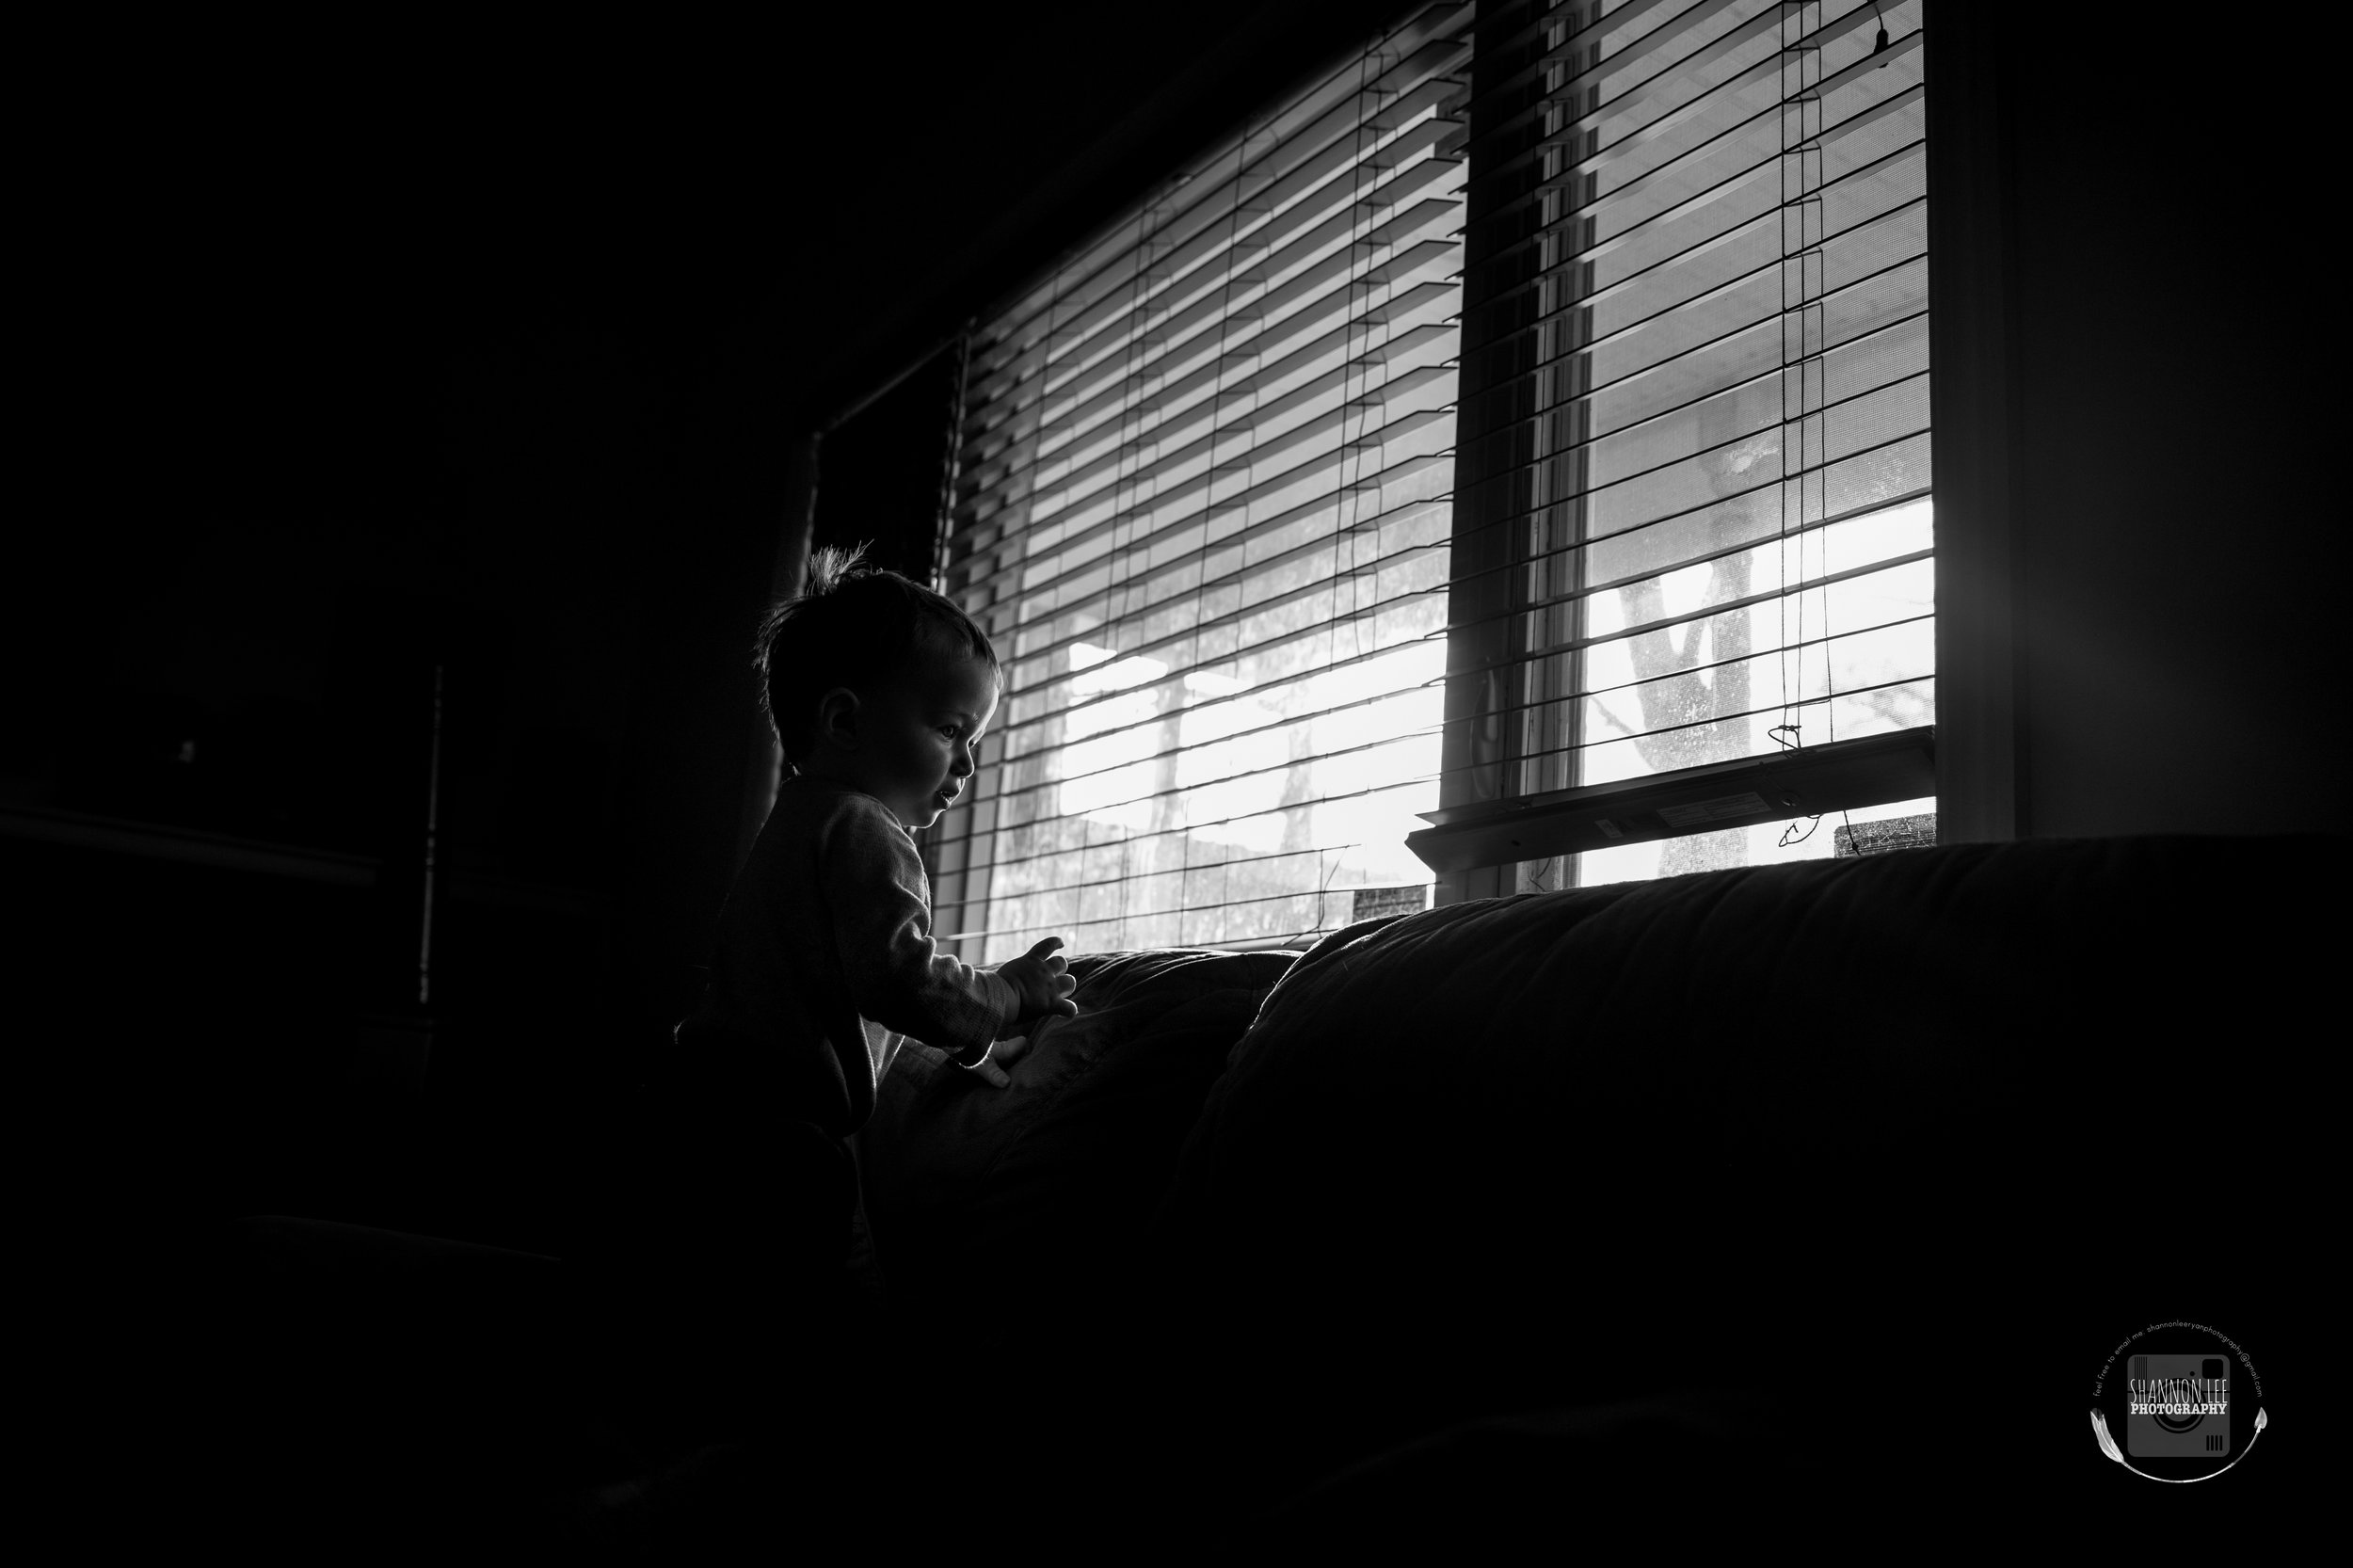 Baby boy loves looking out the window. Love the light highlighting his little features.